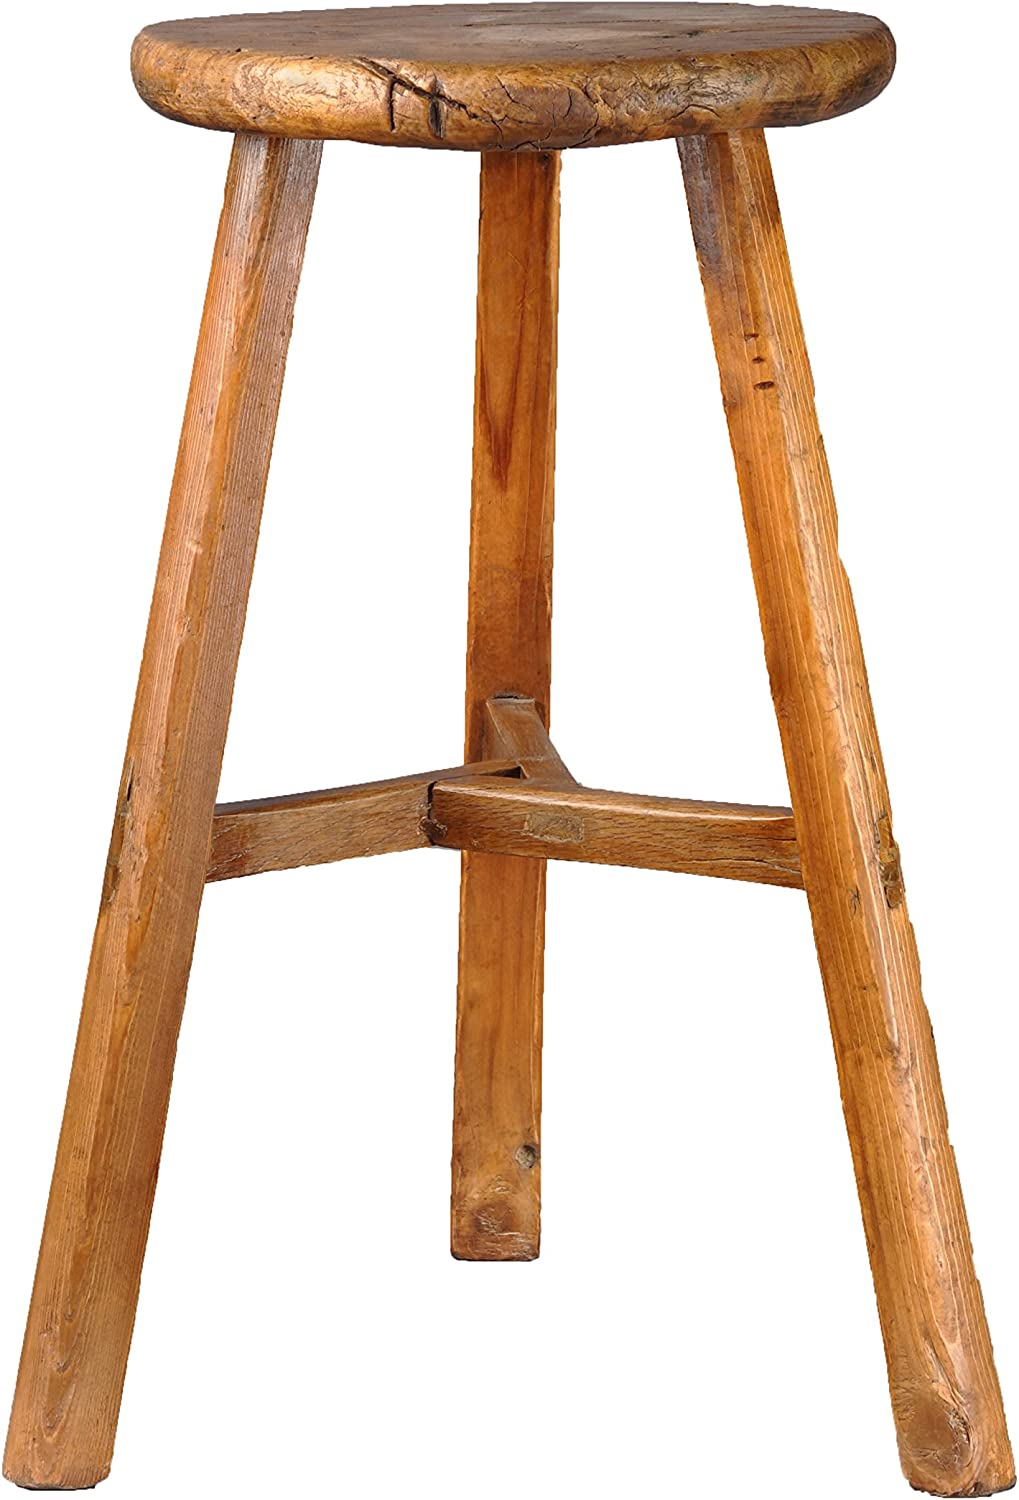 Porthos Home Vintage Country Stool, Natural